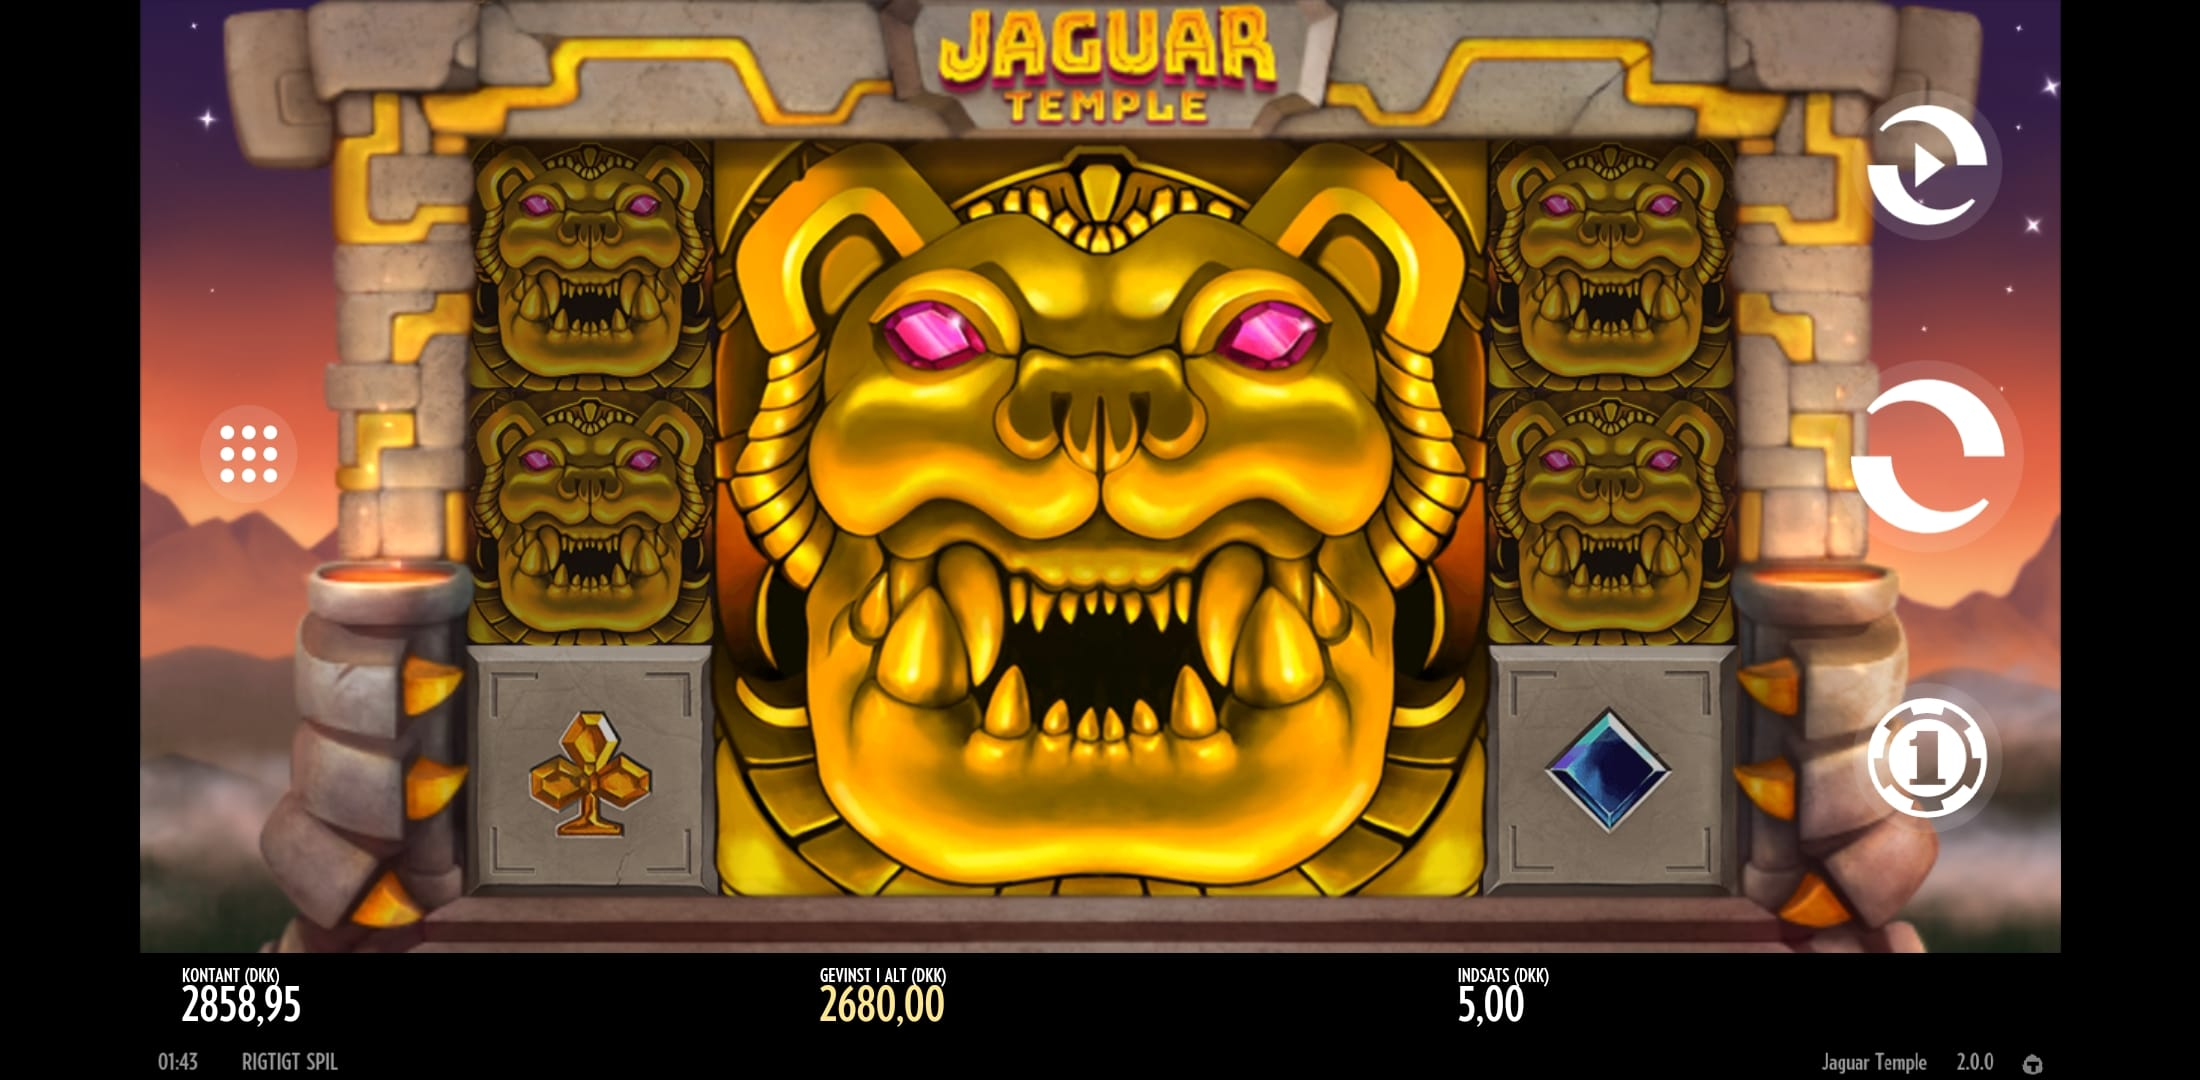 Jaguar Temple by Thunderkick Big Win Picture